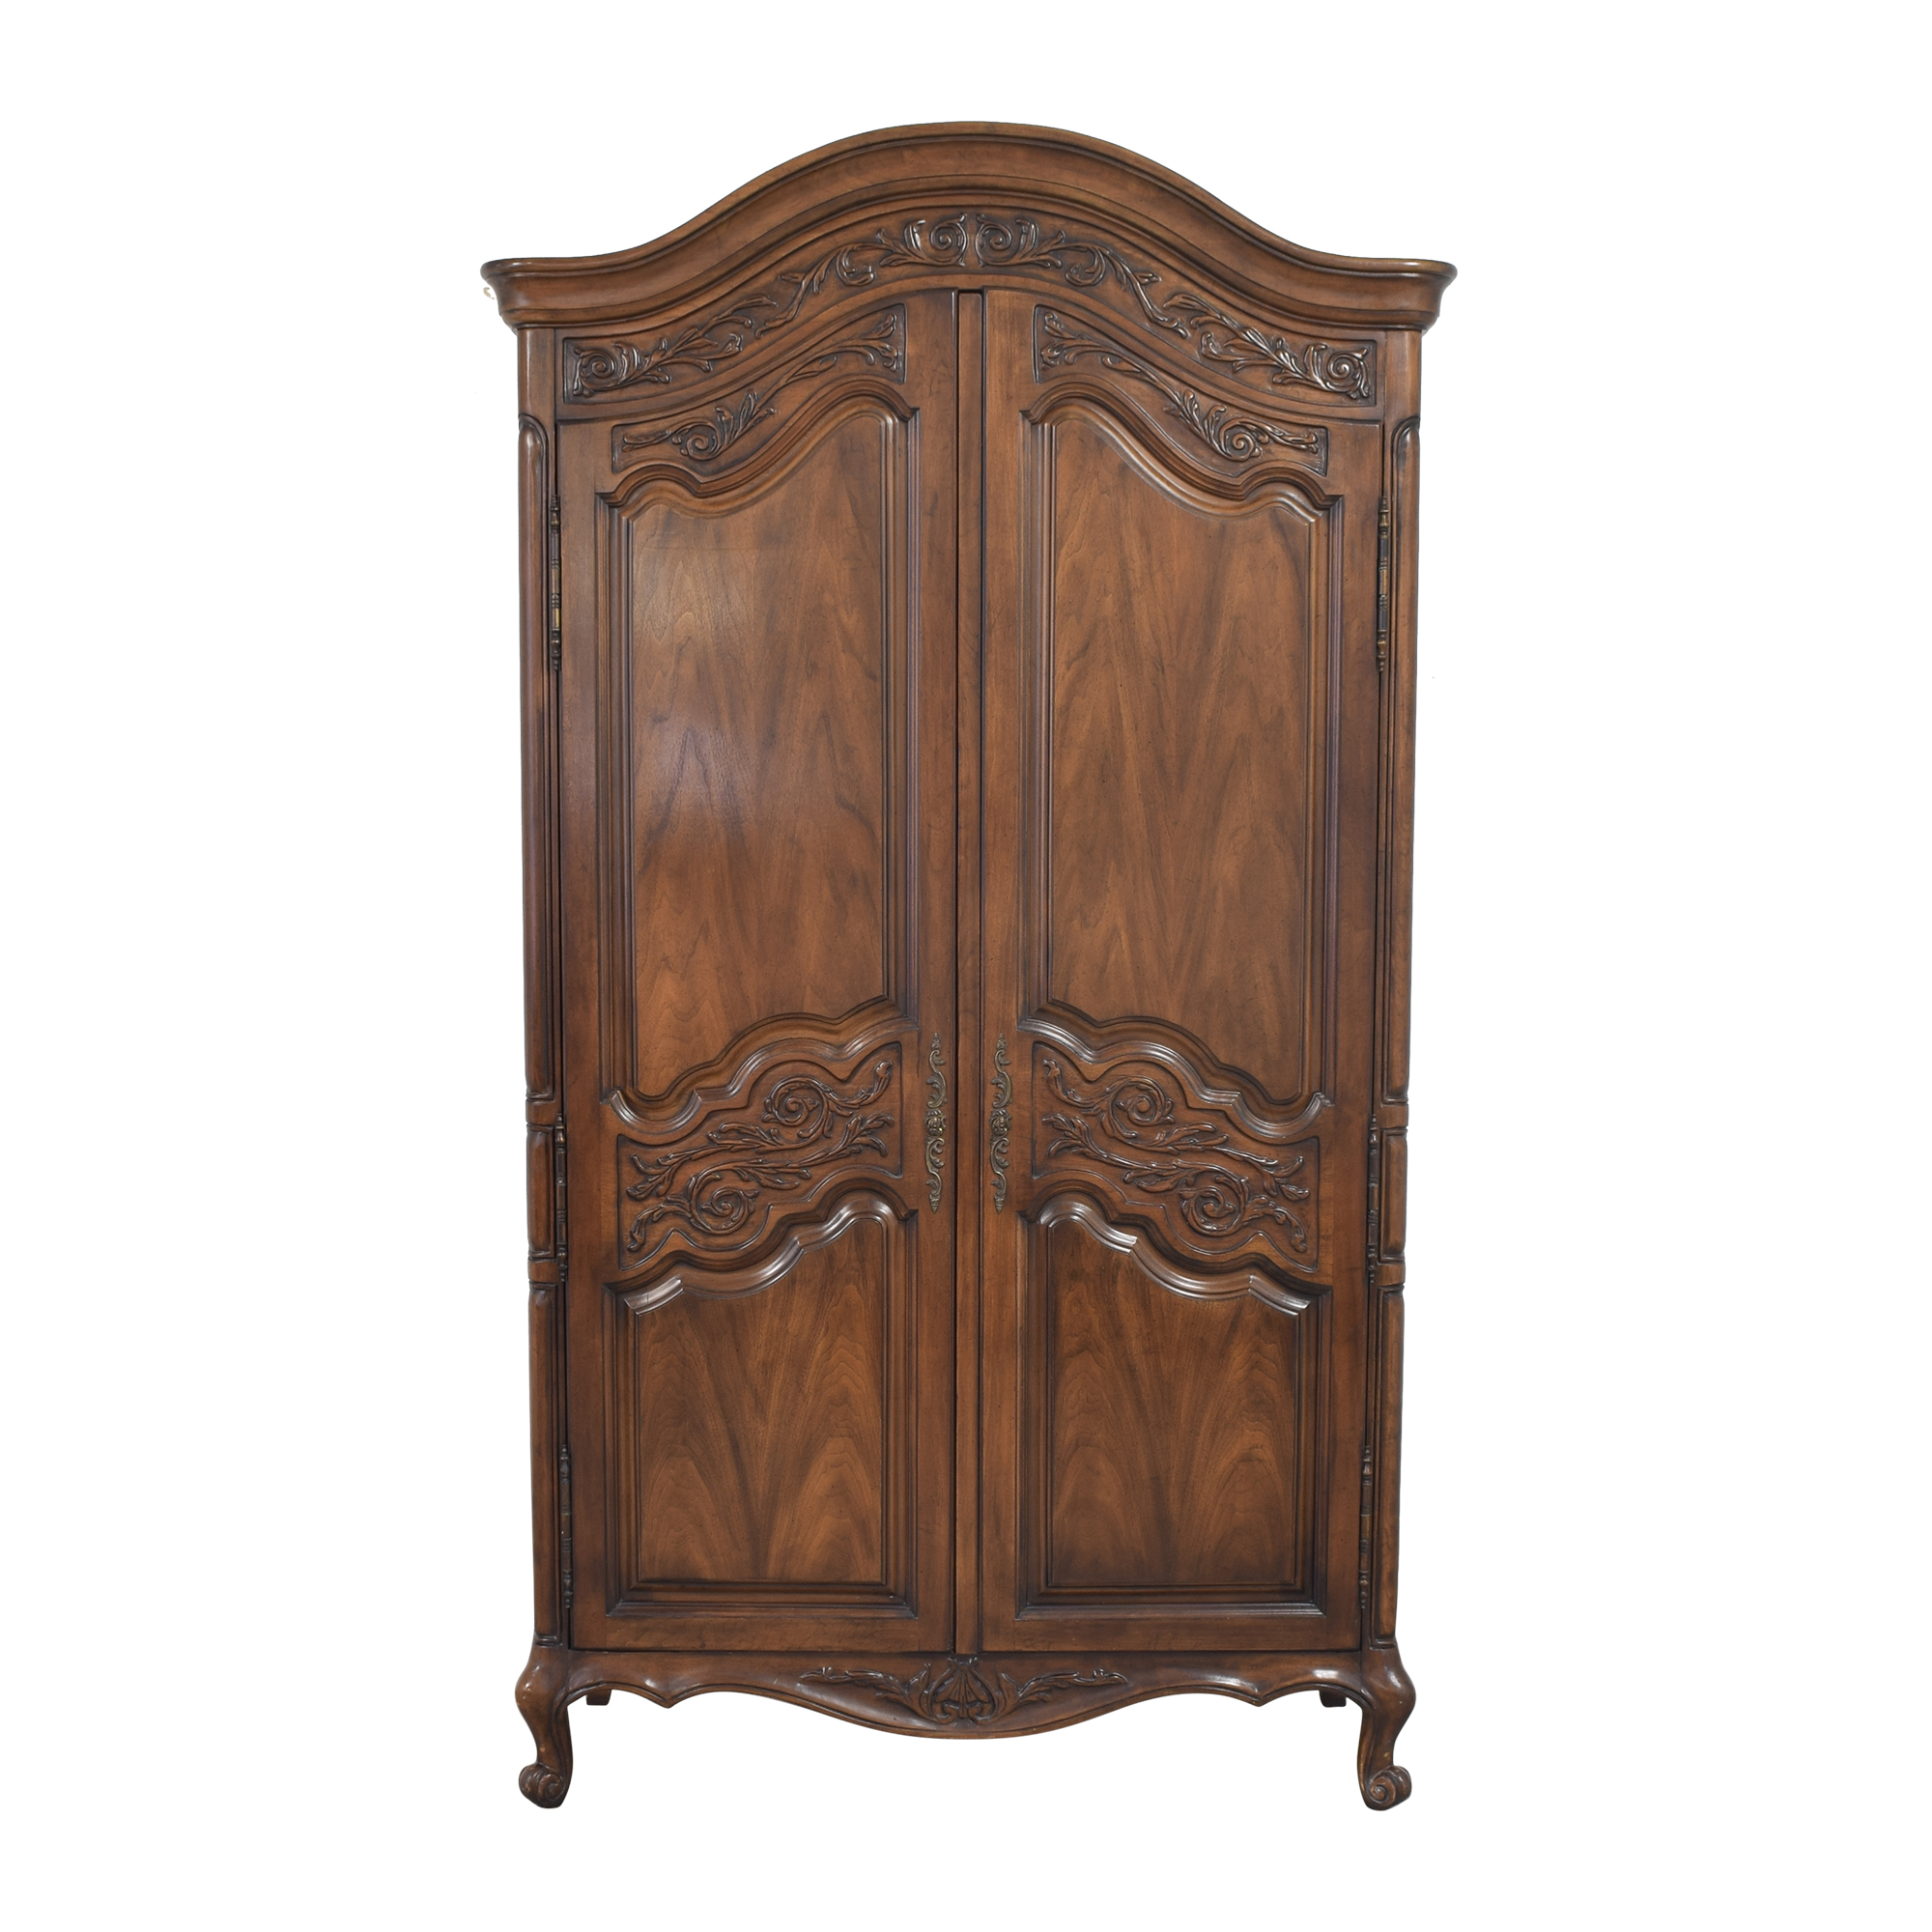 White Fine Furniture White Fine Furniture Armoire Wardrobes & Armoires